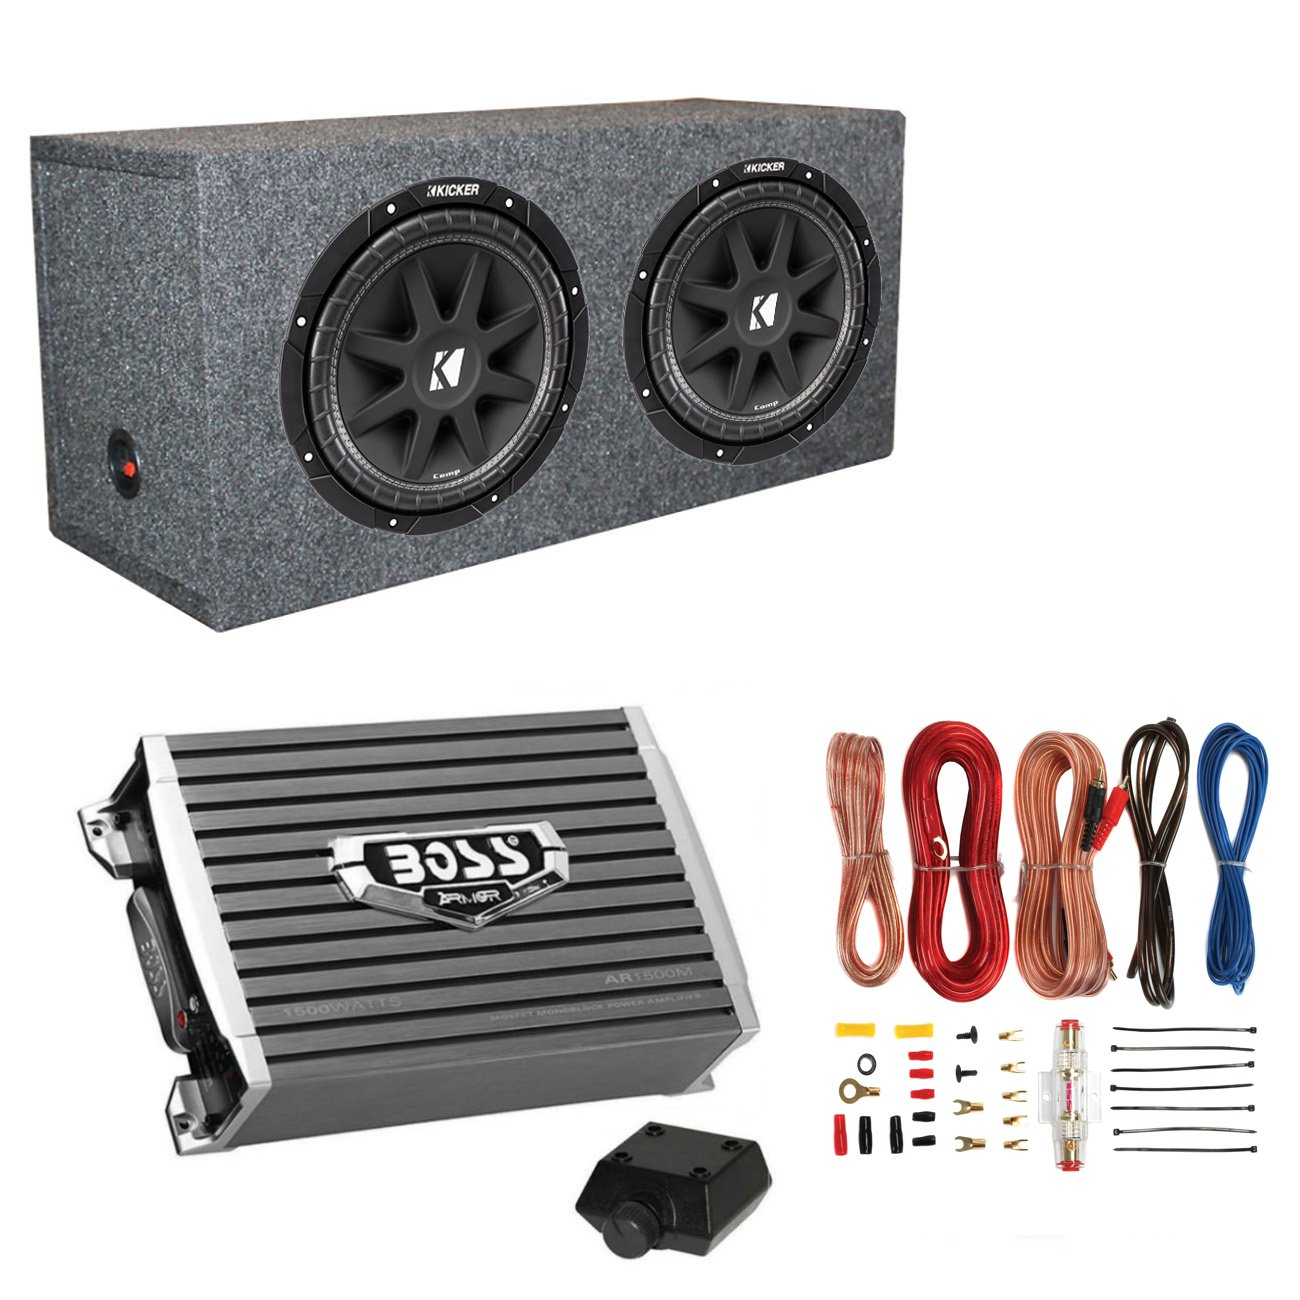 Kicker 10c124 1000w 12 Inch Subwoofers With Sealed Box Car Audio Gt Amplifier Kit Amp Wiring Pyle 8ga Speaker Wire Enclosure Pair Electronics